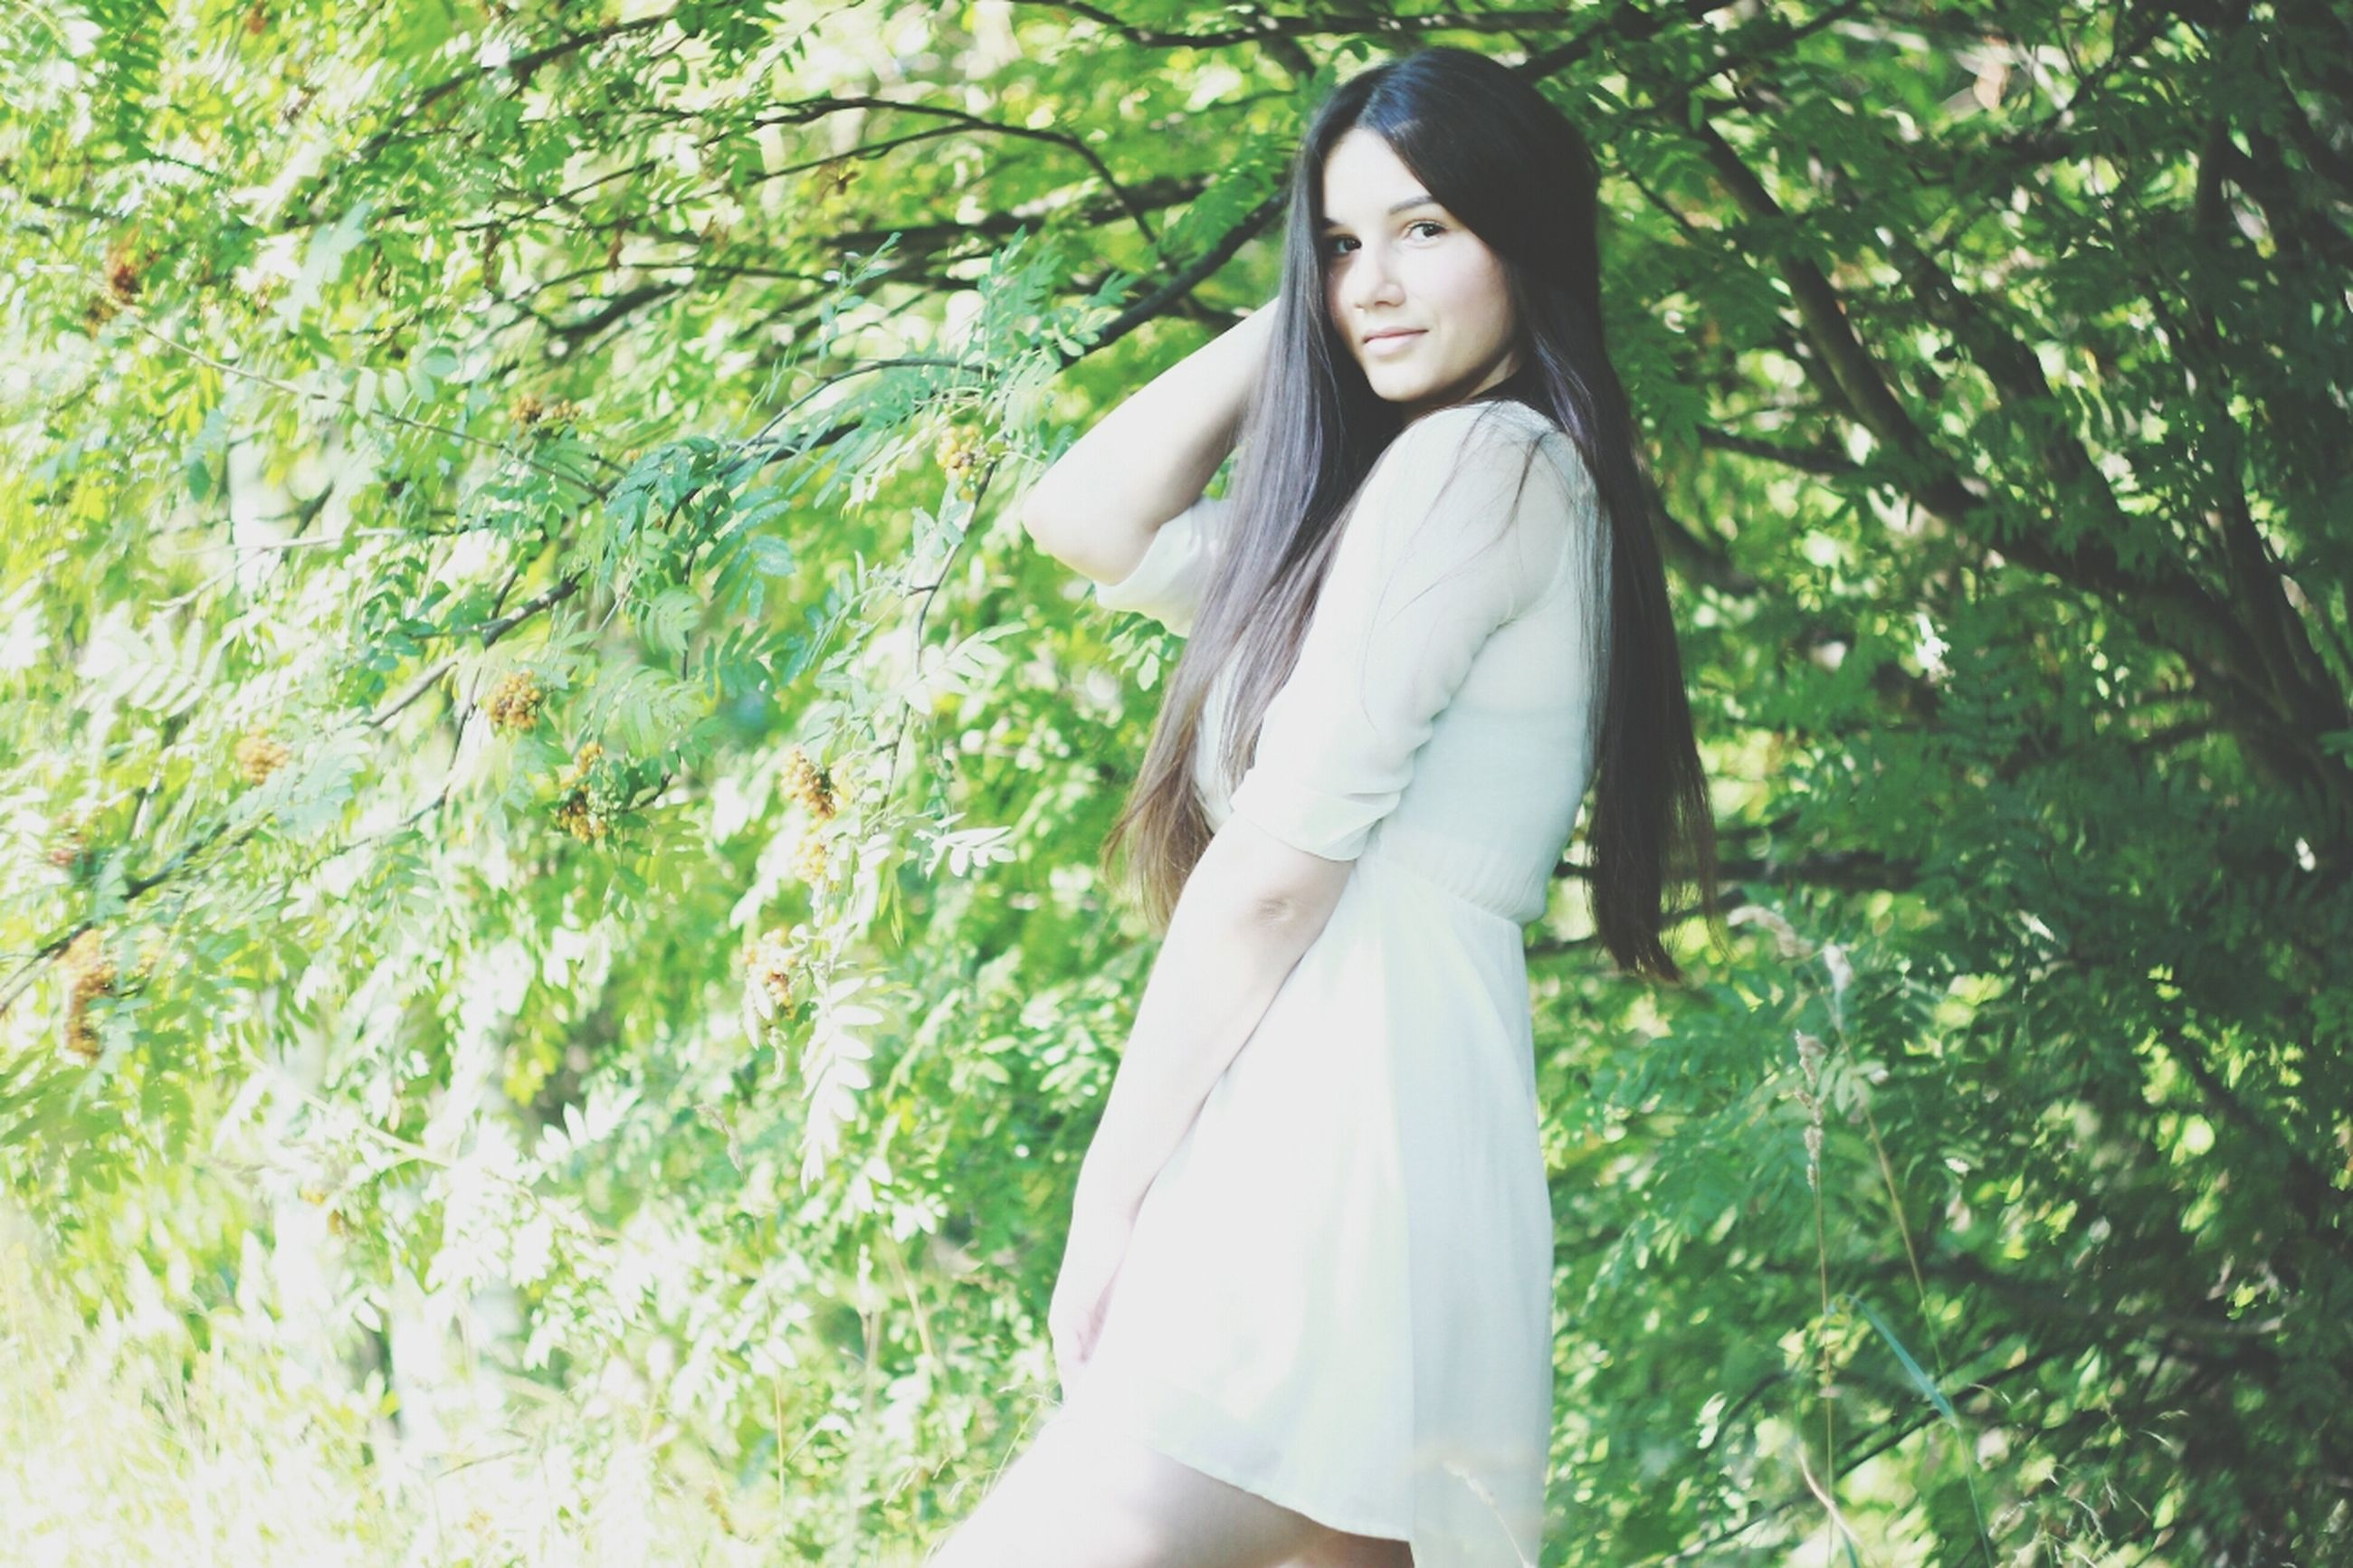 young adult, young women, person, casual clothing, lifestyles, front view, standing, looking at camera, tree, portrait, leisure activity, three quarter length, long hair, smiling, beauty, fashion, dress